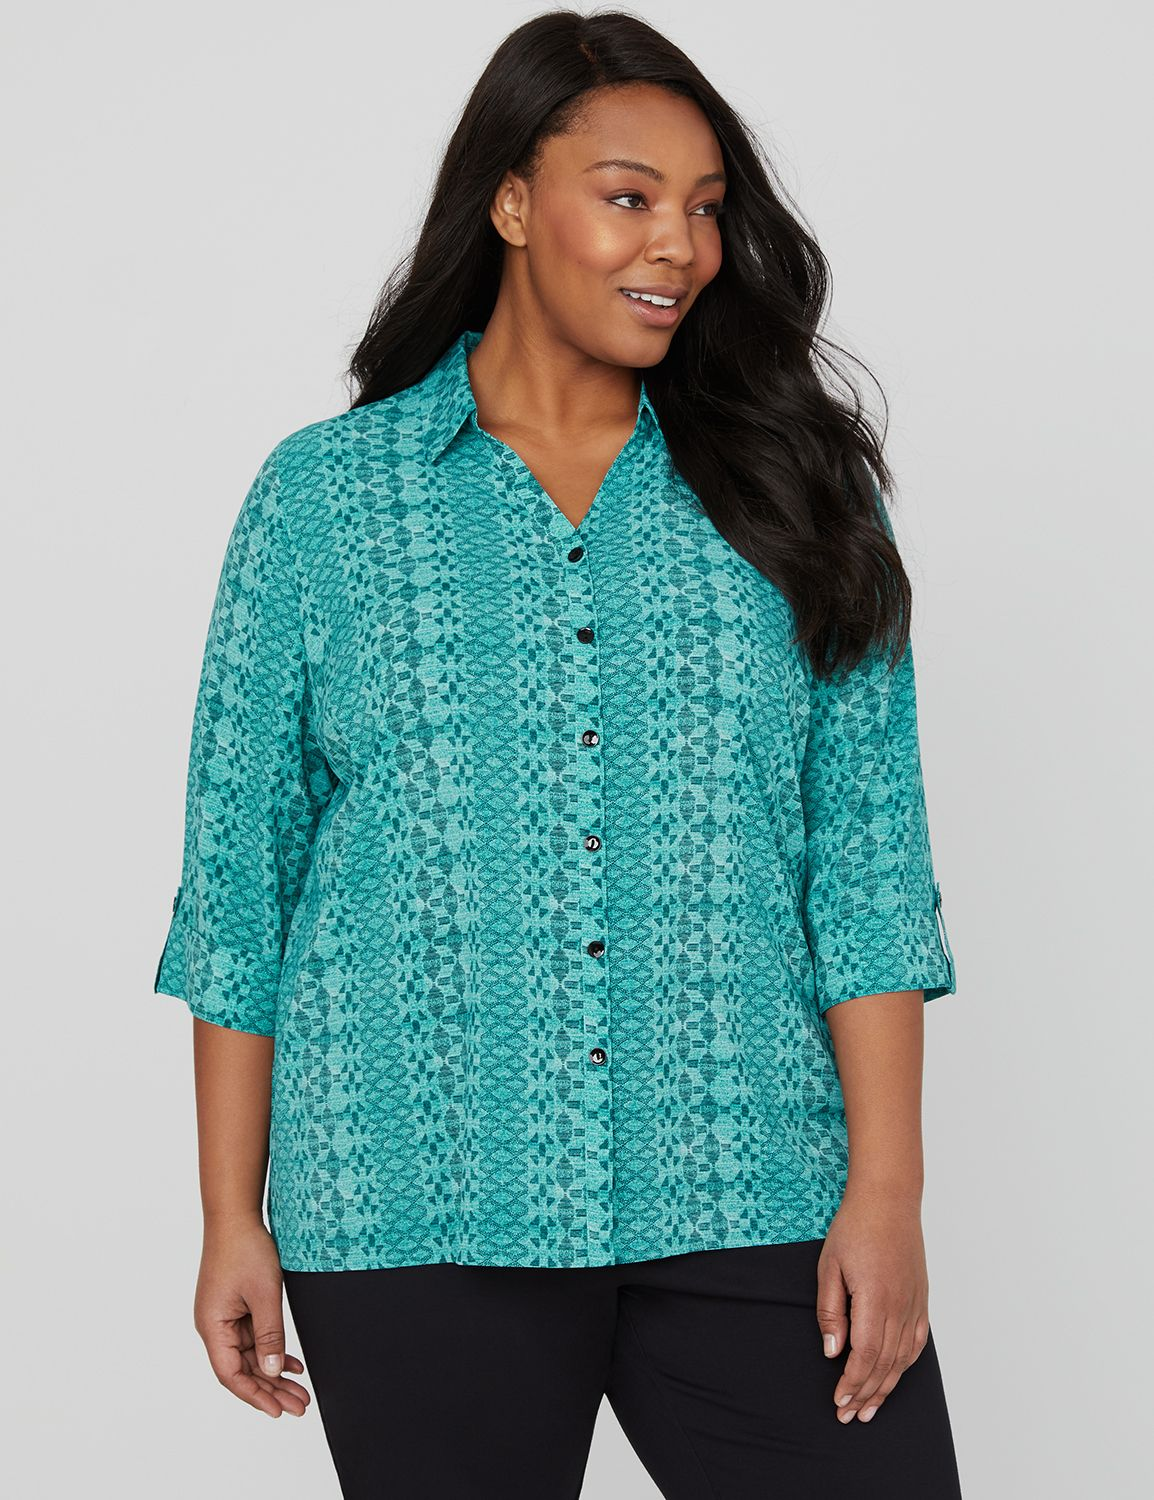 Maldives Buttonfront Shirt 3/4 Slv Collared CDC Blouse MP-300104916